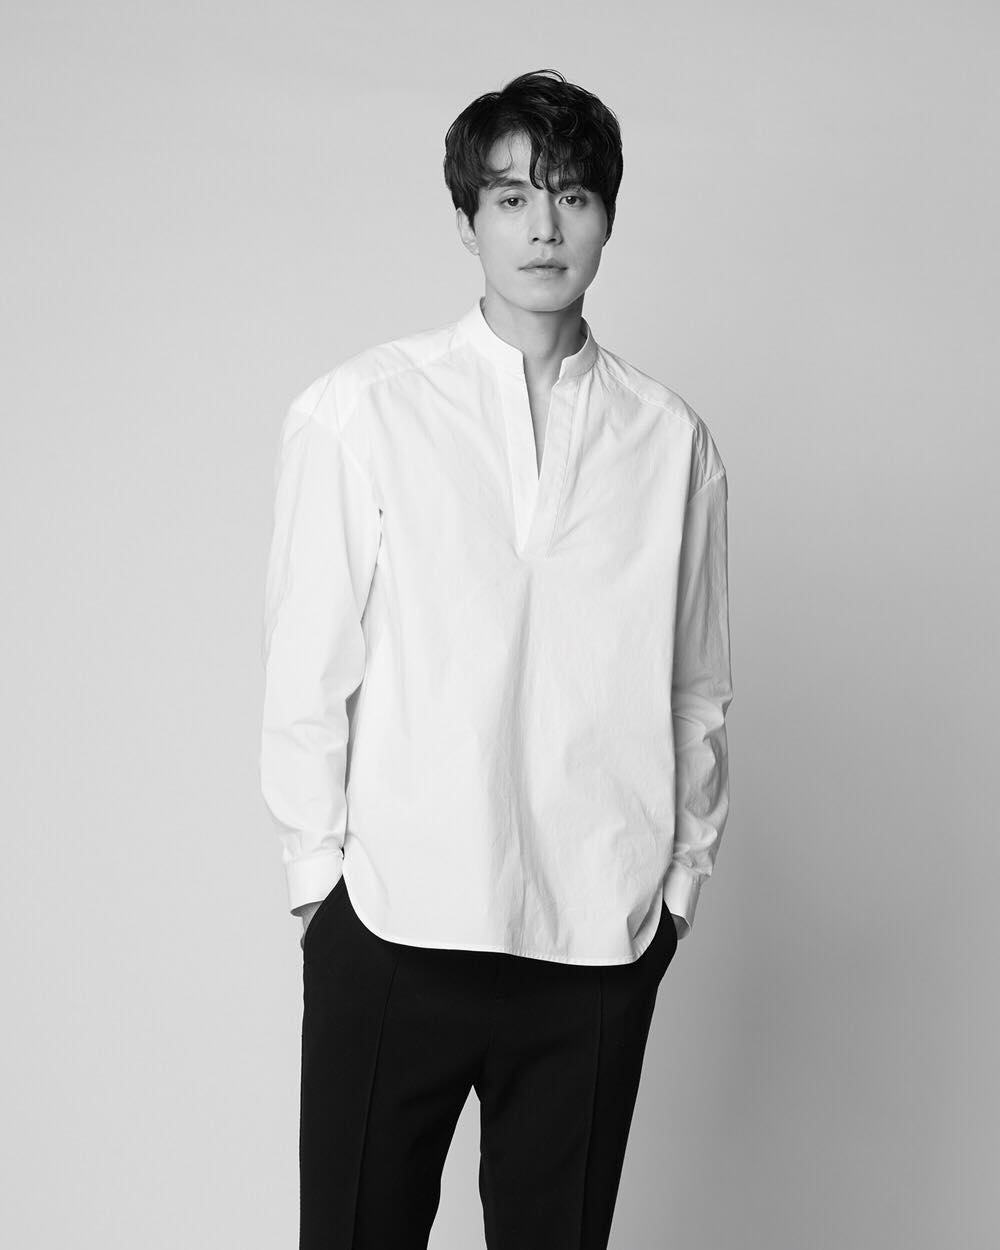 lee dong wook 2017 - photo #14